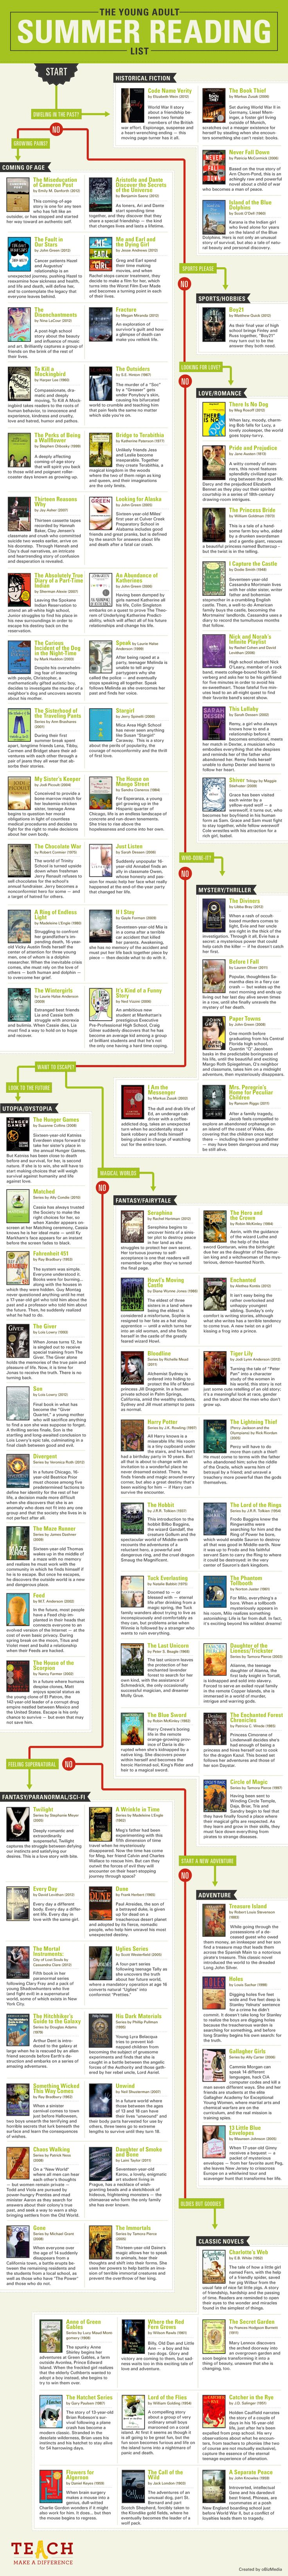 Summer Reading Flowchart Young Adults